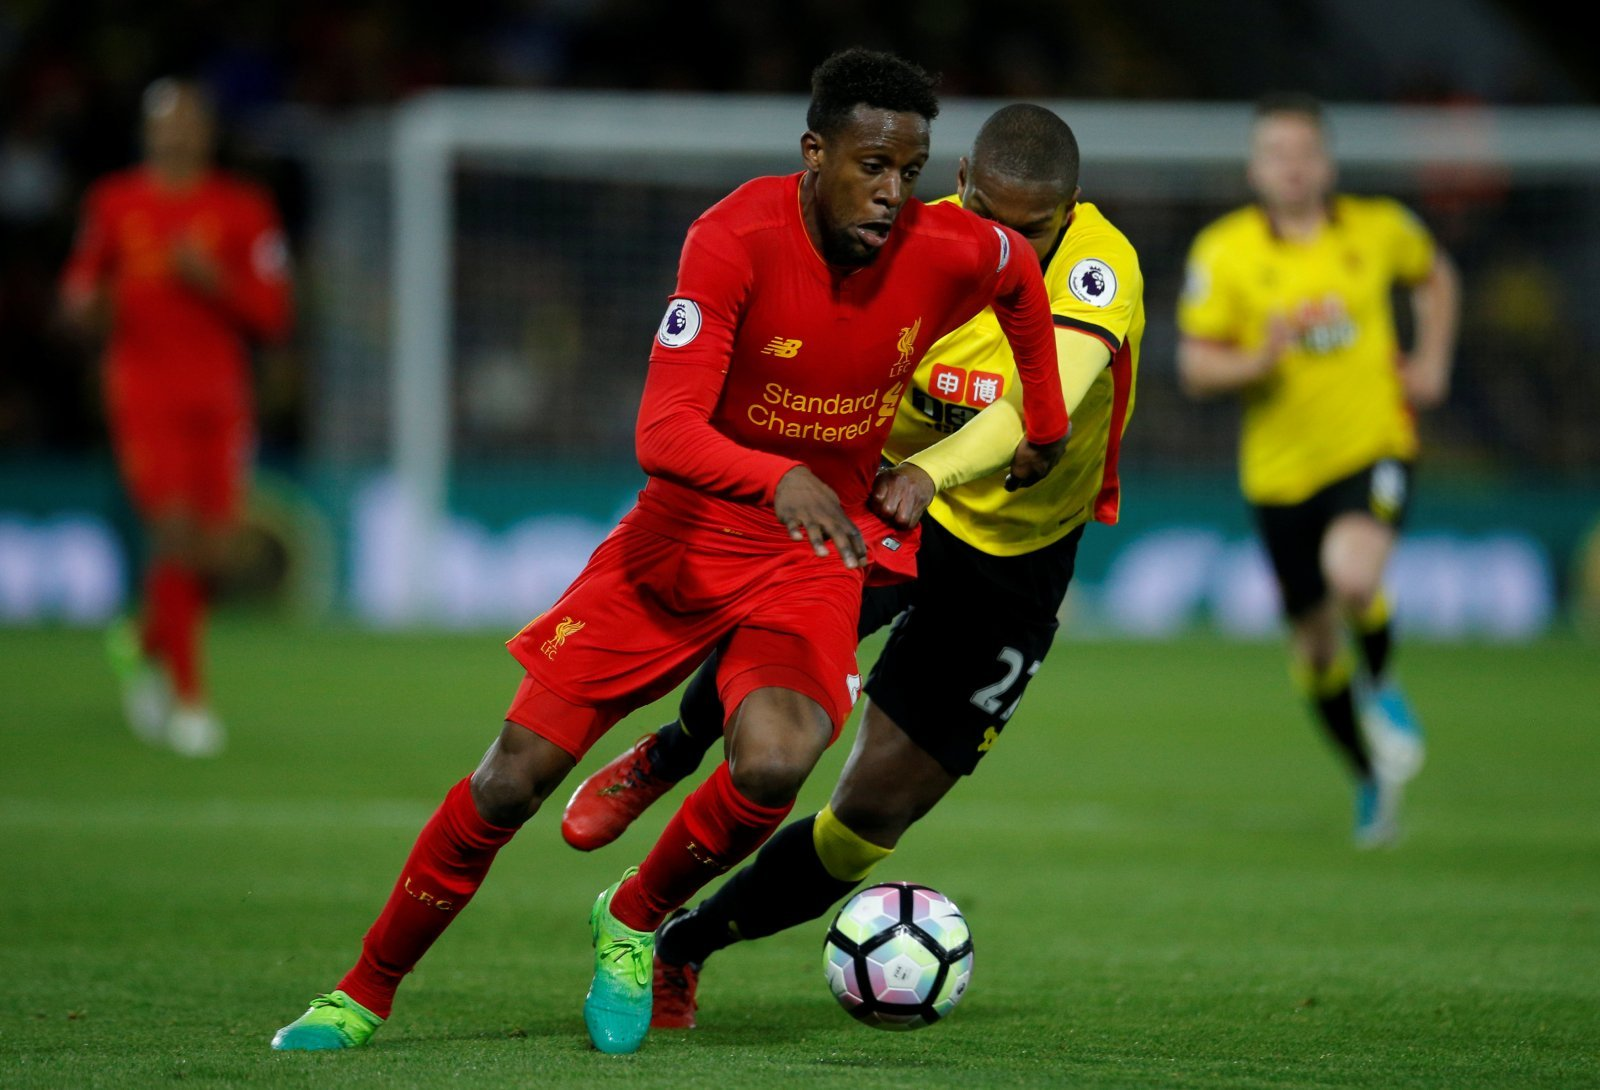 Divock Origi receiving interest from Watford